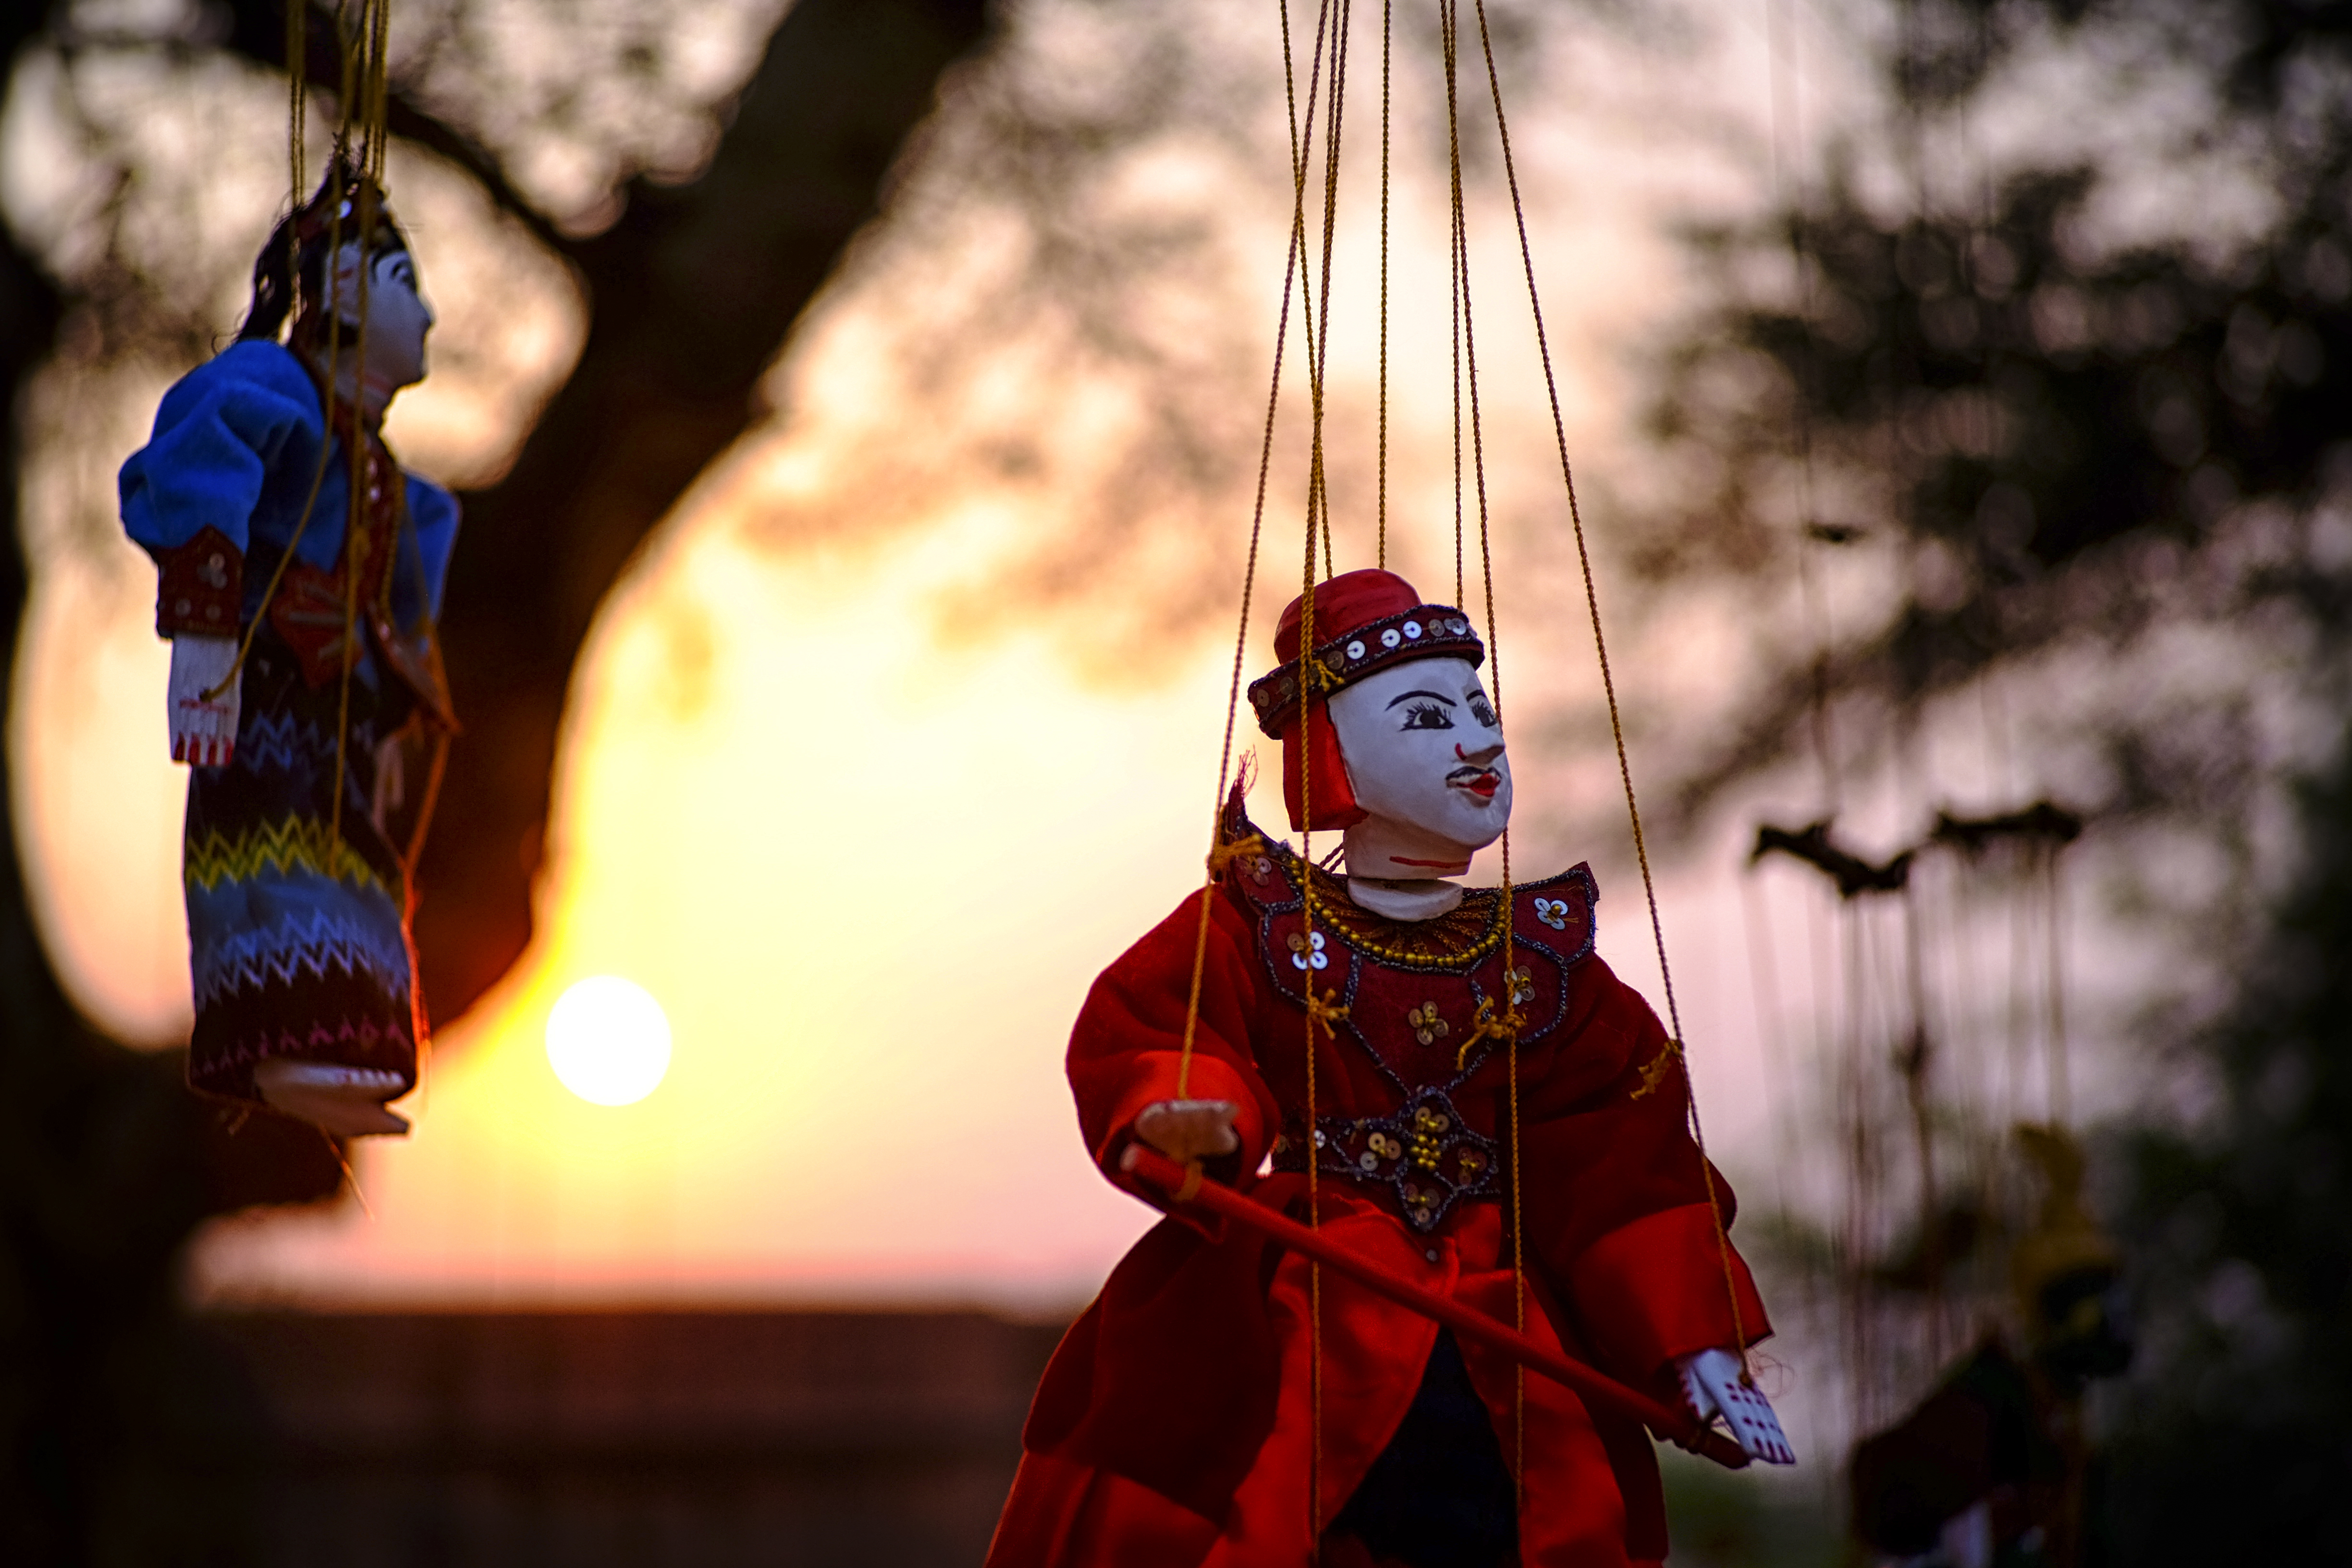 Puppets manipulated with strings